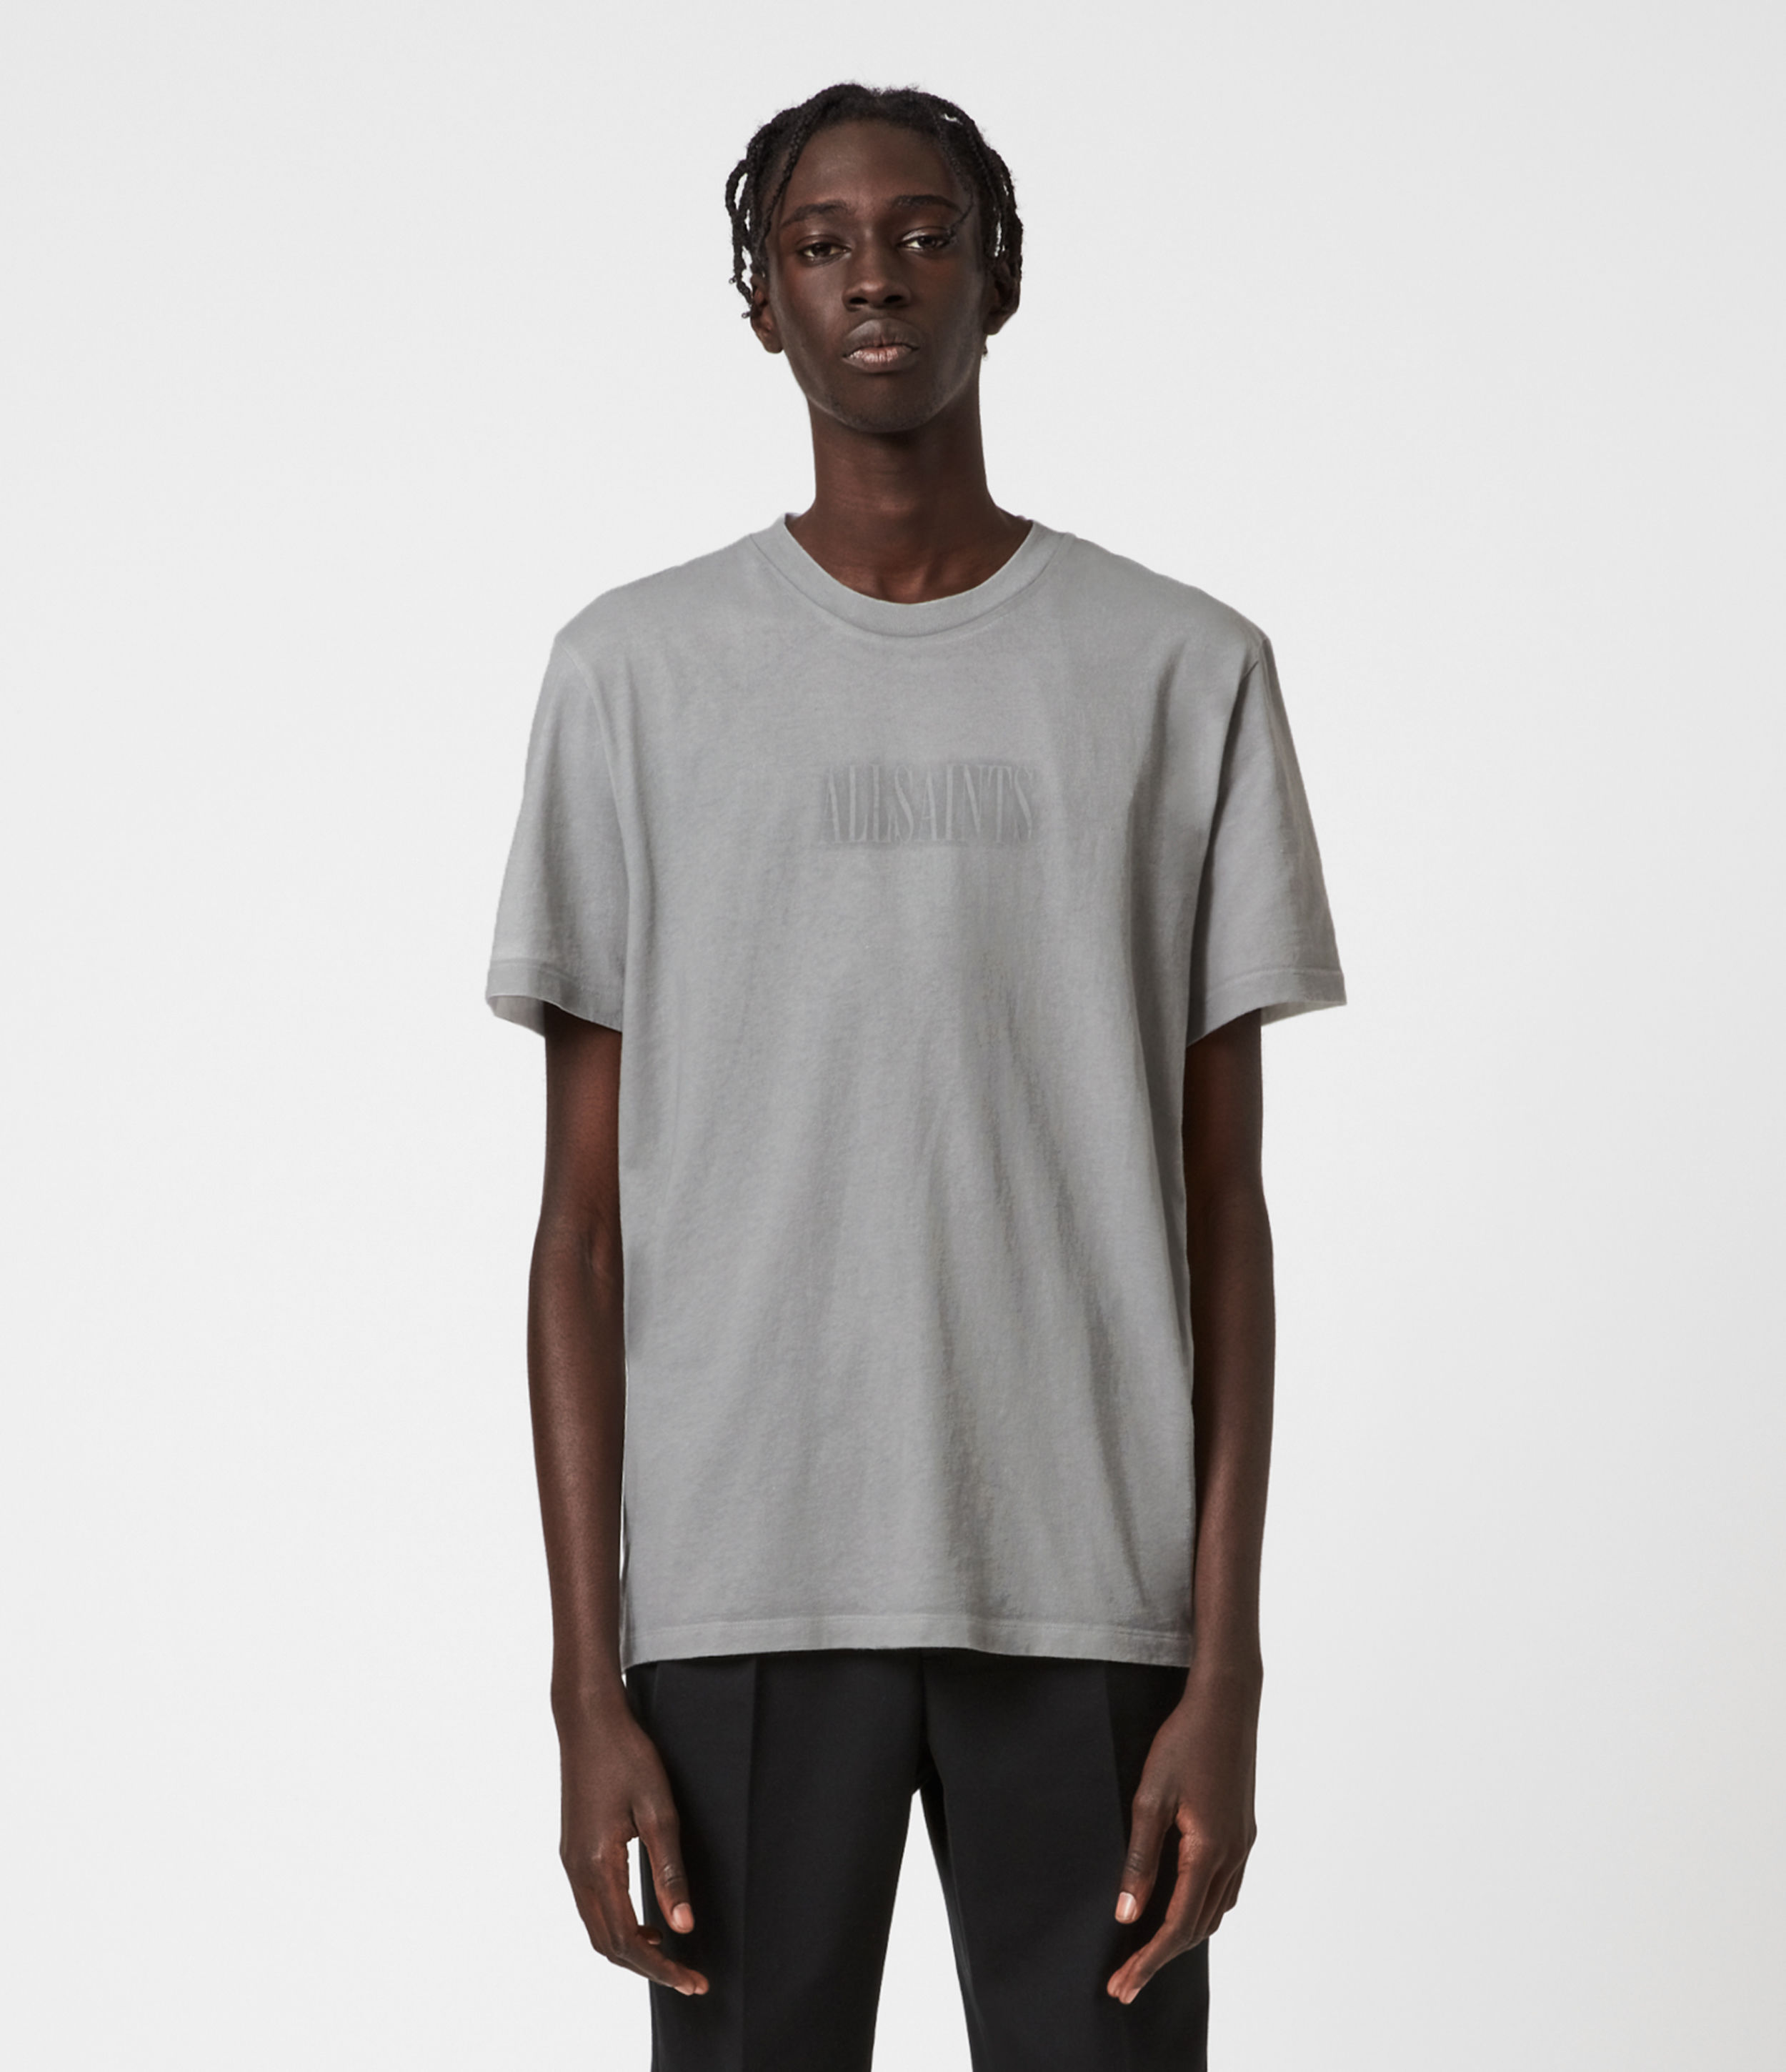 AllSaints Mens Highway Crew T-Shirt, Chalk/clay Grey, Size: M